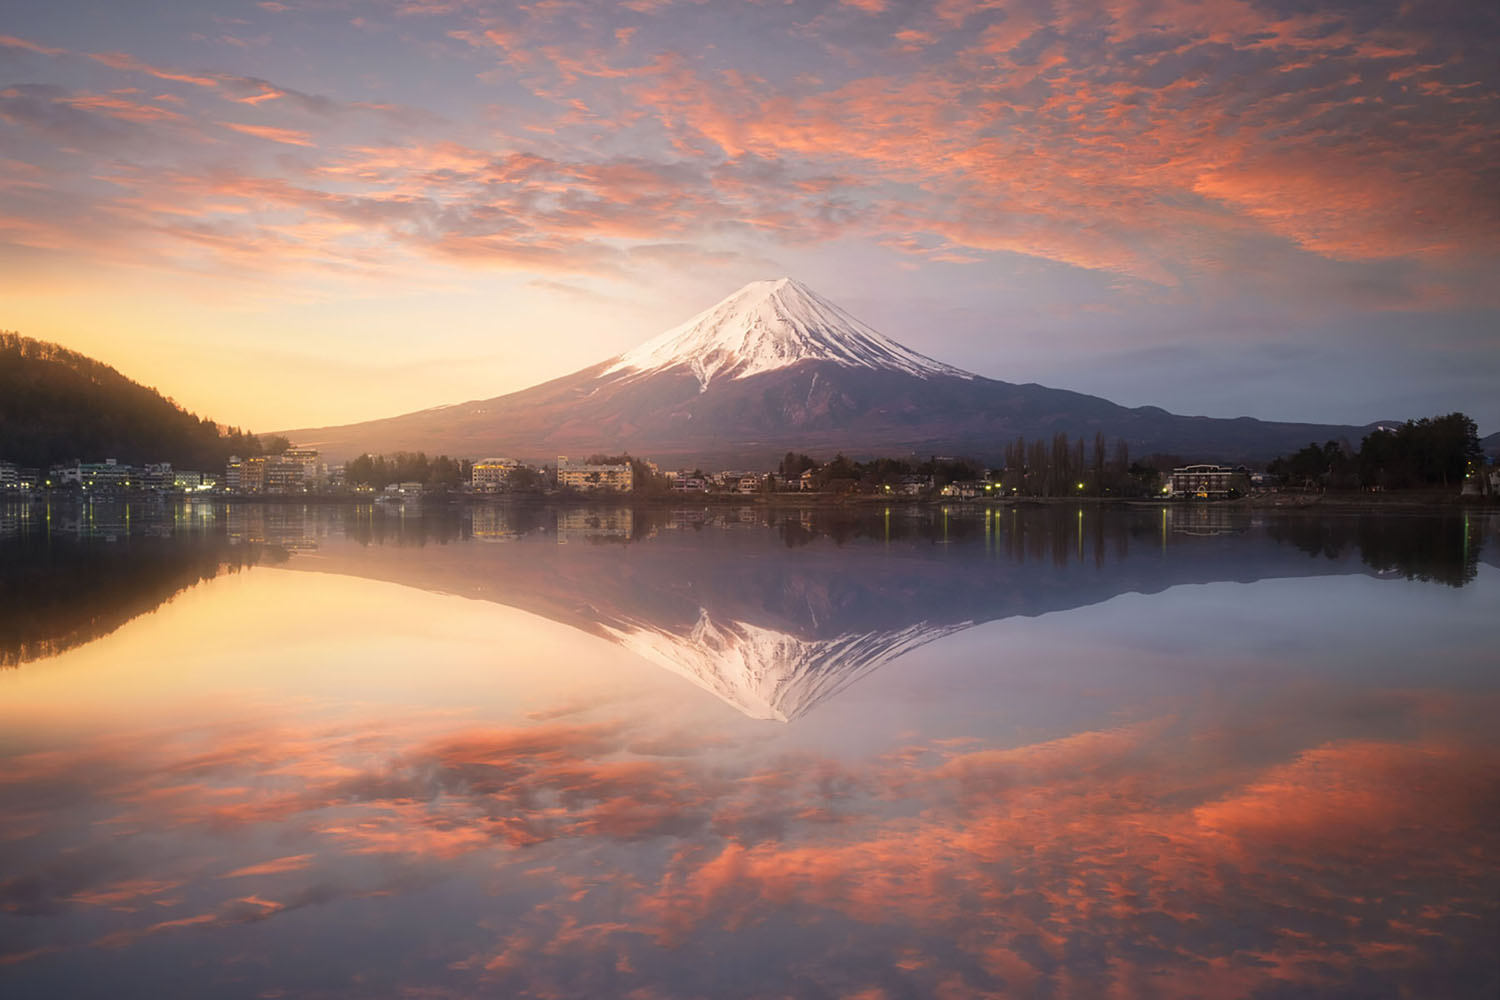 Fuji mountain reflection on water at sunrise near kawaguchiko lake, Japan